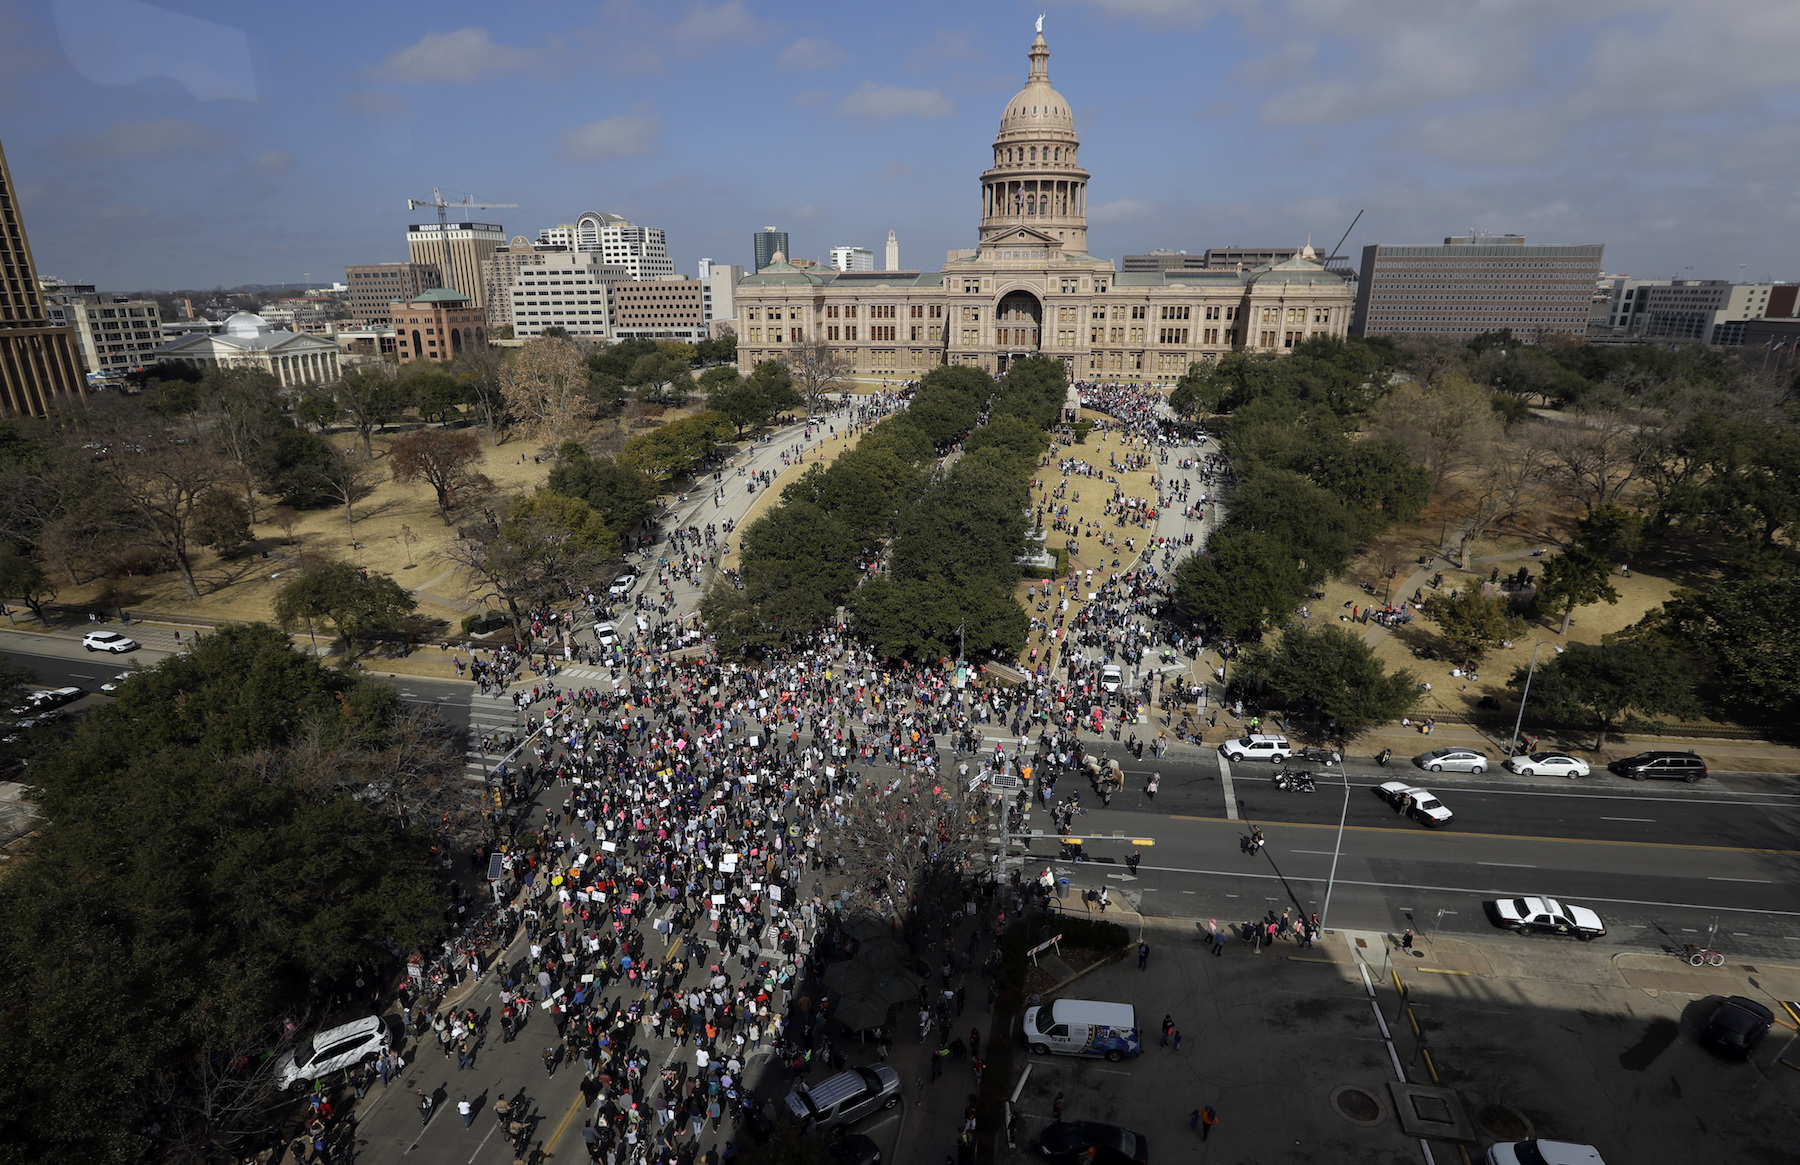 <div class='meta'><div class='origin-logo' data-origin='AP'></div><span class='caption-text' data-credit='AP Photo/Eric Gay'>A women's march heads to the Texas State Capitol on the one-year anniversary of President Donald Trump's inauguration, Saturday, Jan. 20, 2018, in Austin, Texas.</span></div>